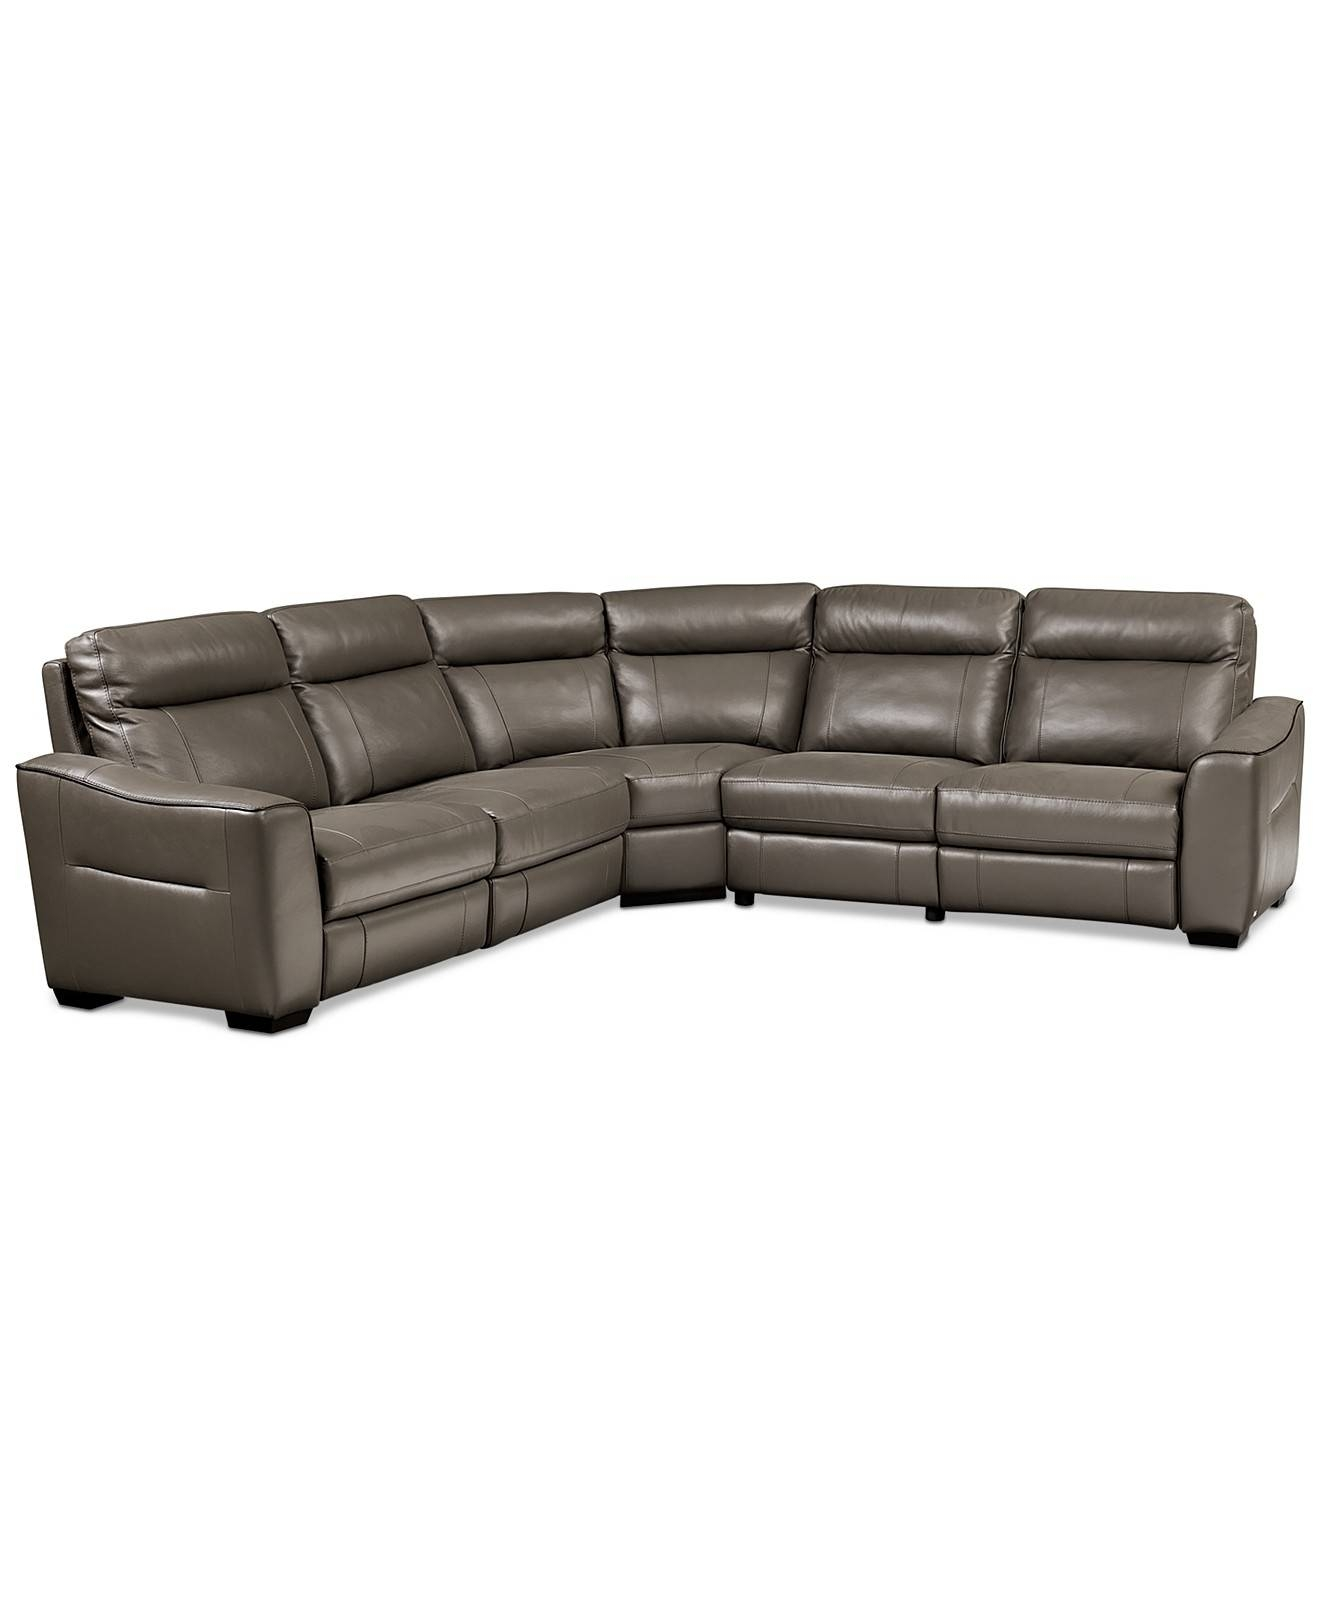 2017 Best of Curved Sectional Sofa With Recliner